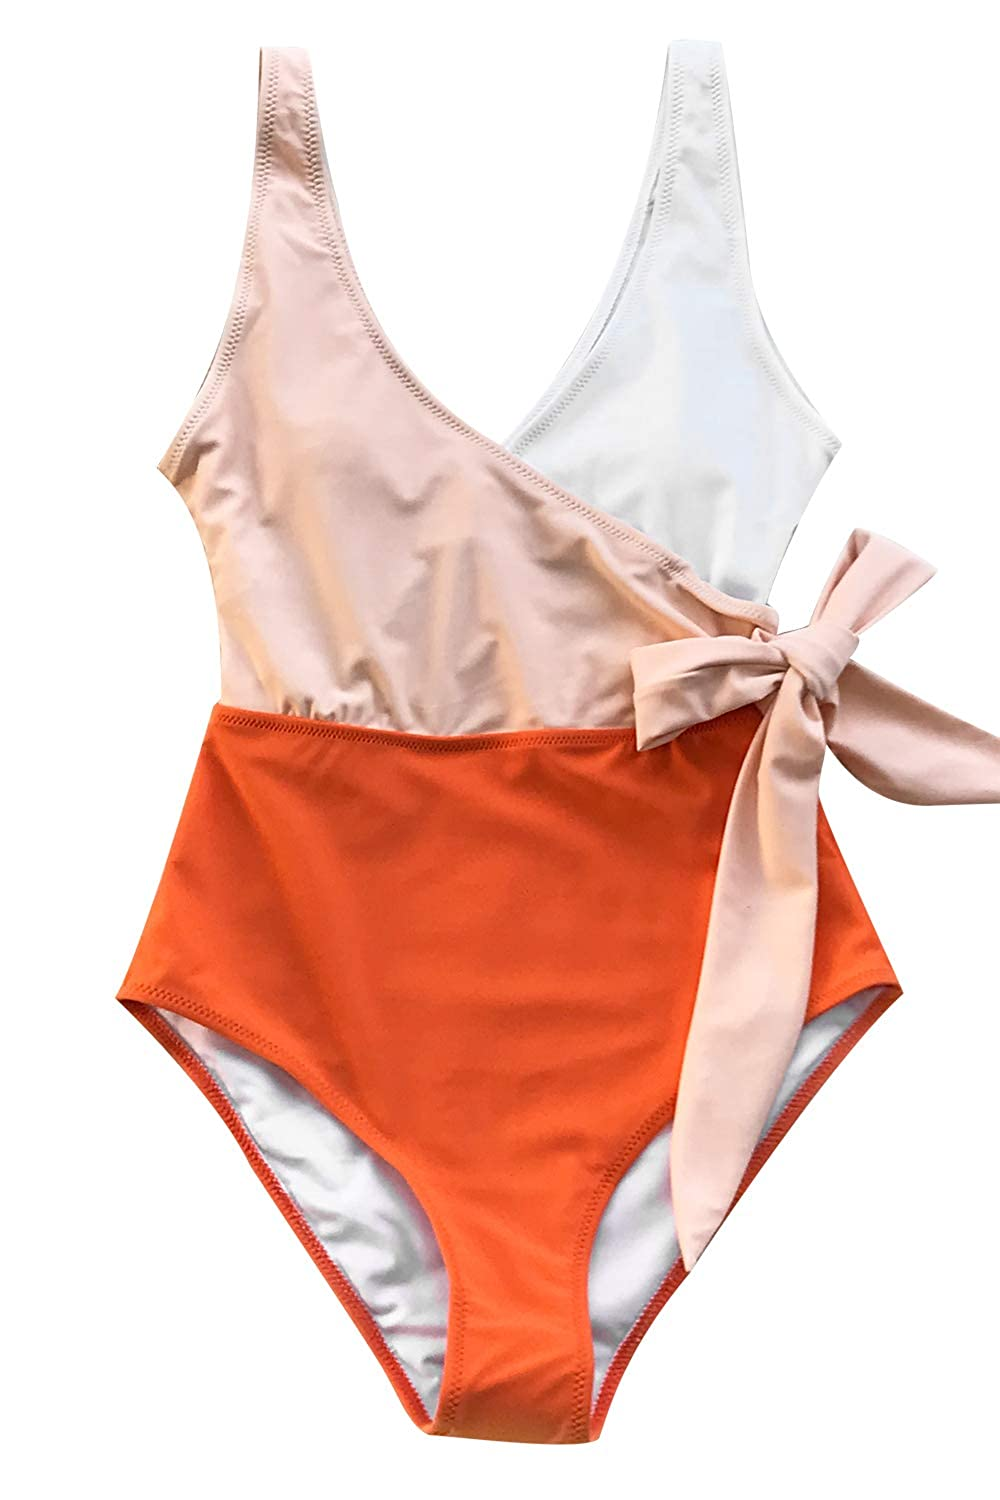 c5284642f96 CUPSHE Women's Orange White Bowknot Bathing Suit Padded One Piece Swimsuit  at Amazon Women's Clothing store: